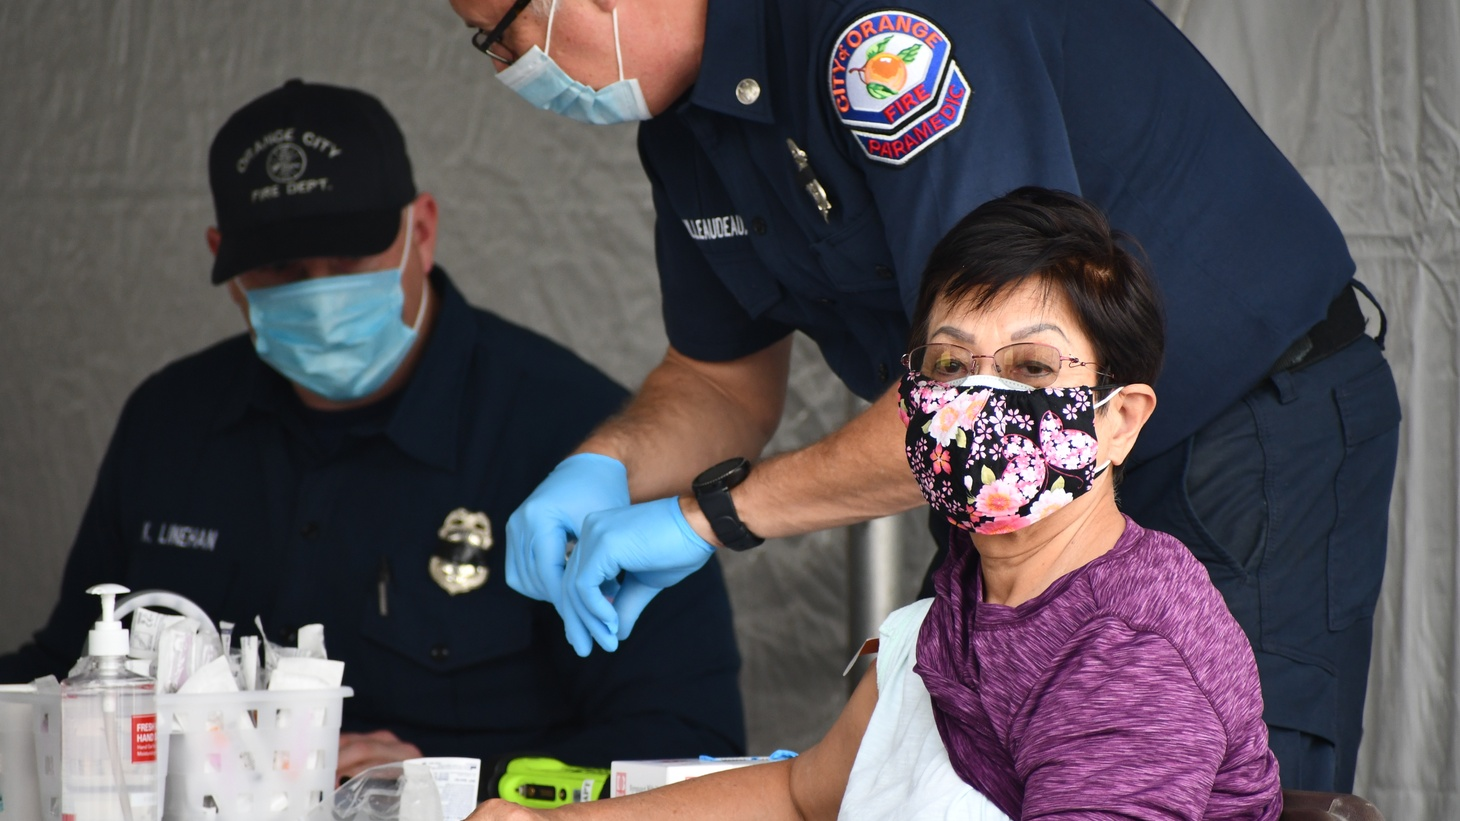 Orange County paramedics administer the coronavirus vaccine to residents at the Disneyland Resort vaccination site, January 13, 2021.